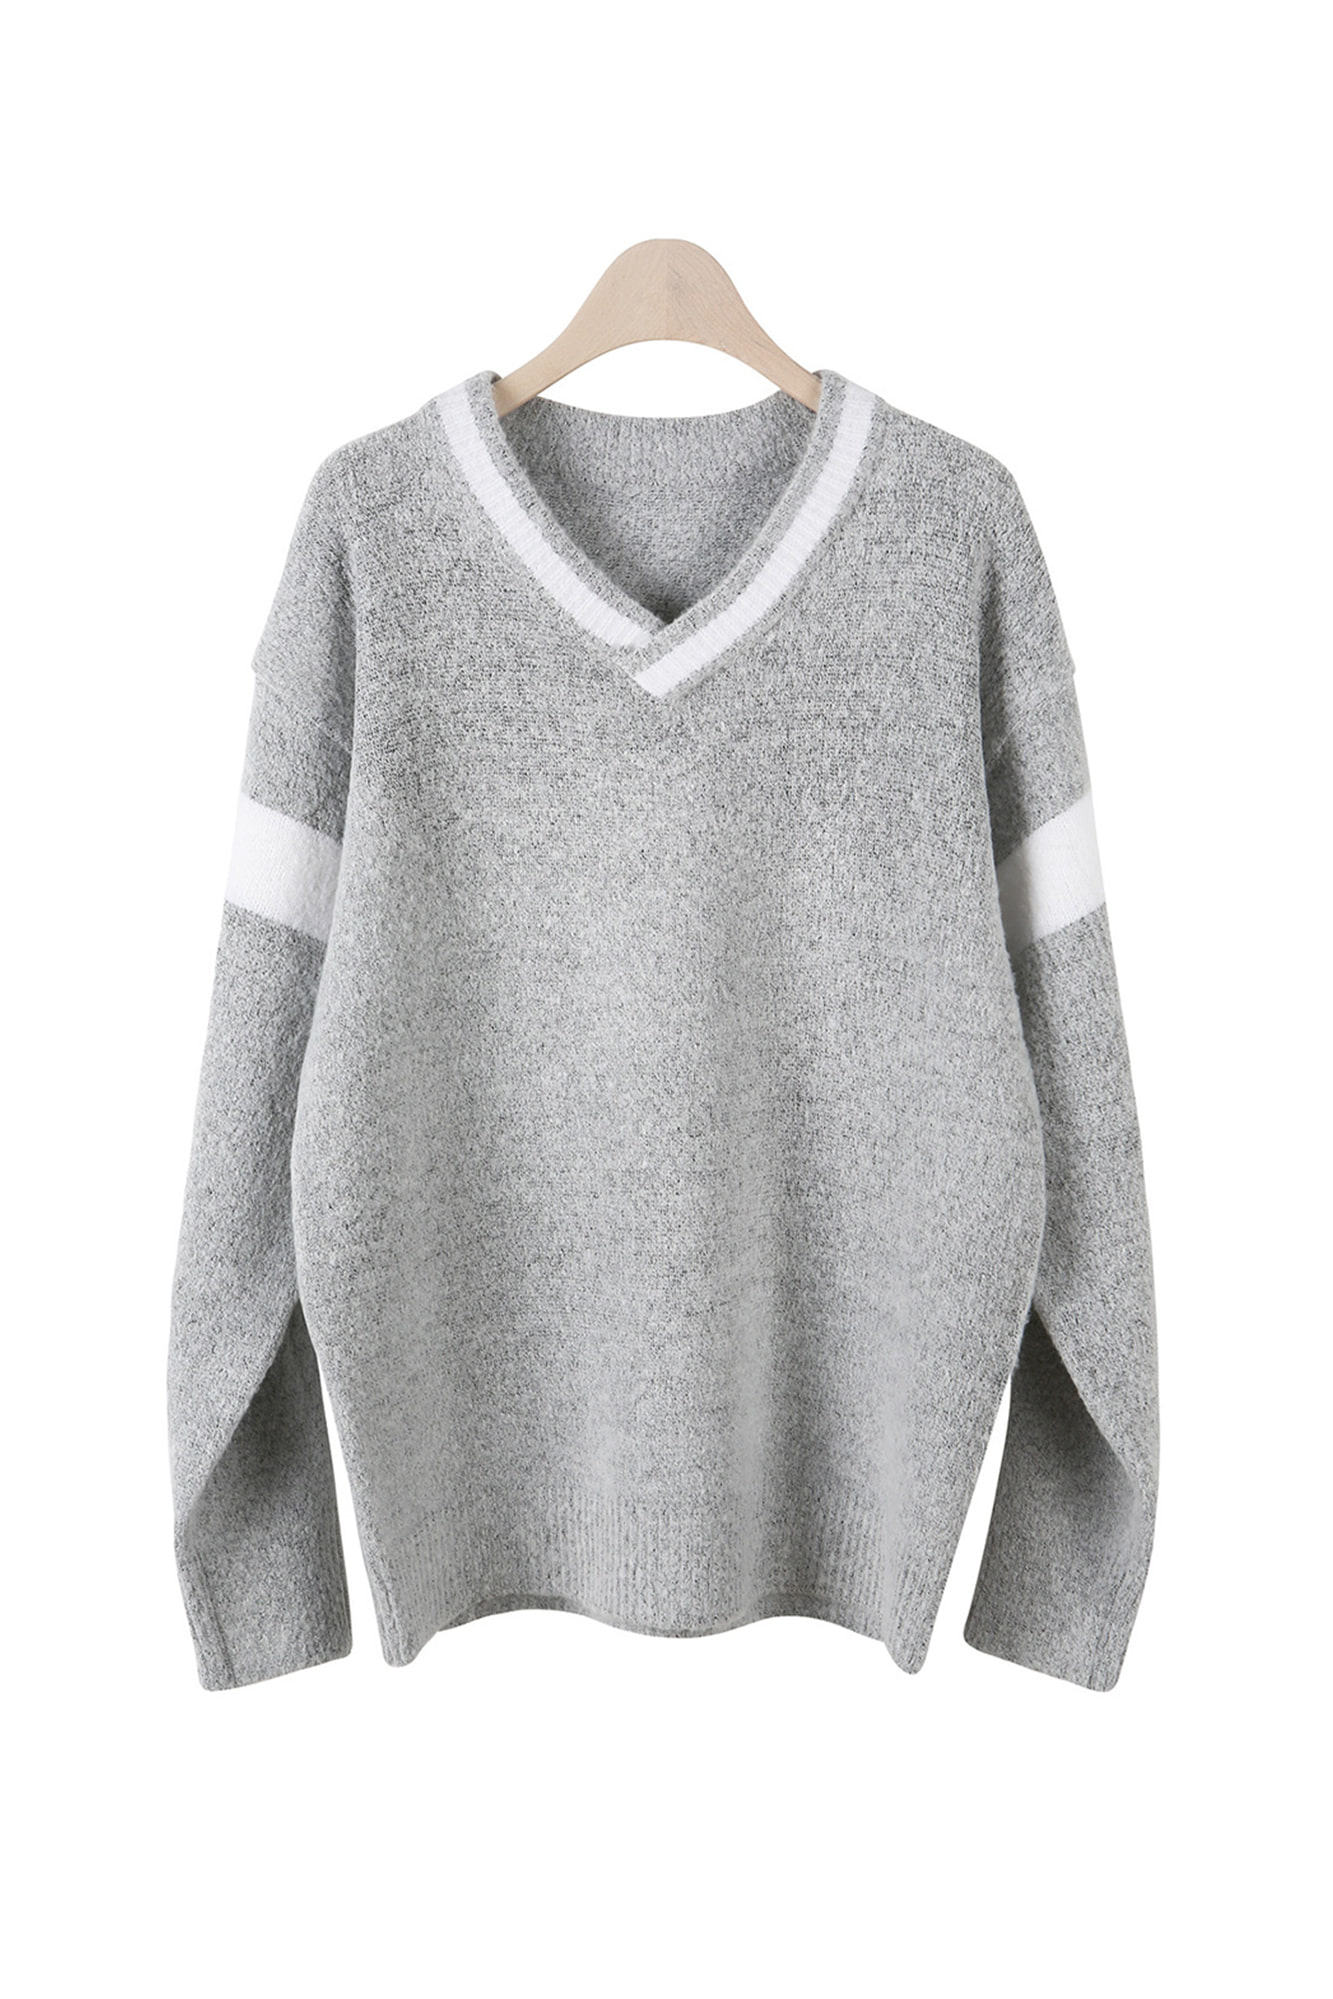 APS V NECK KNIT SWEATER [2 COLORS]